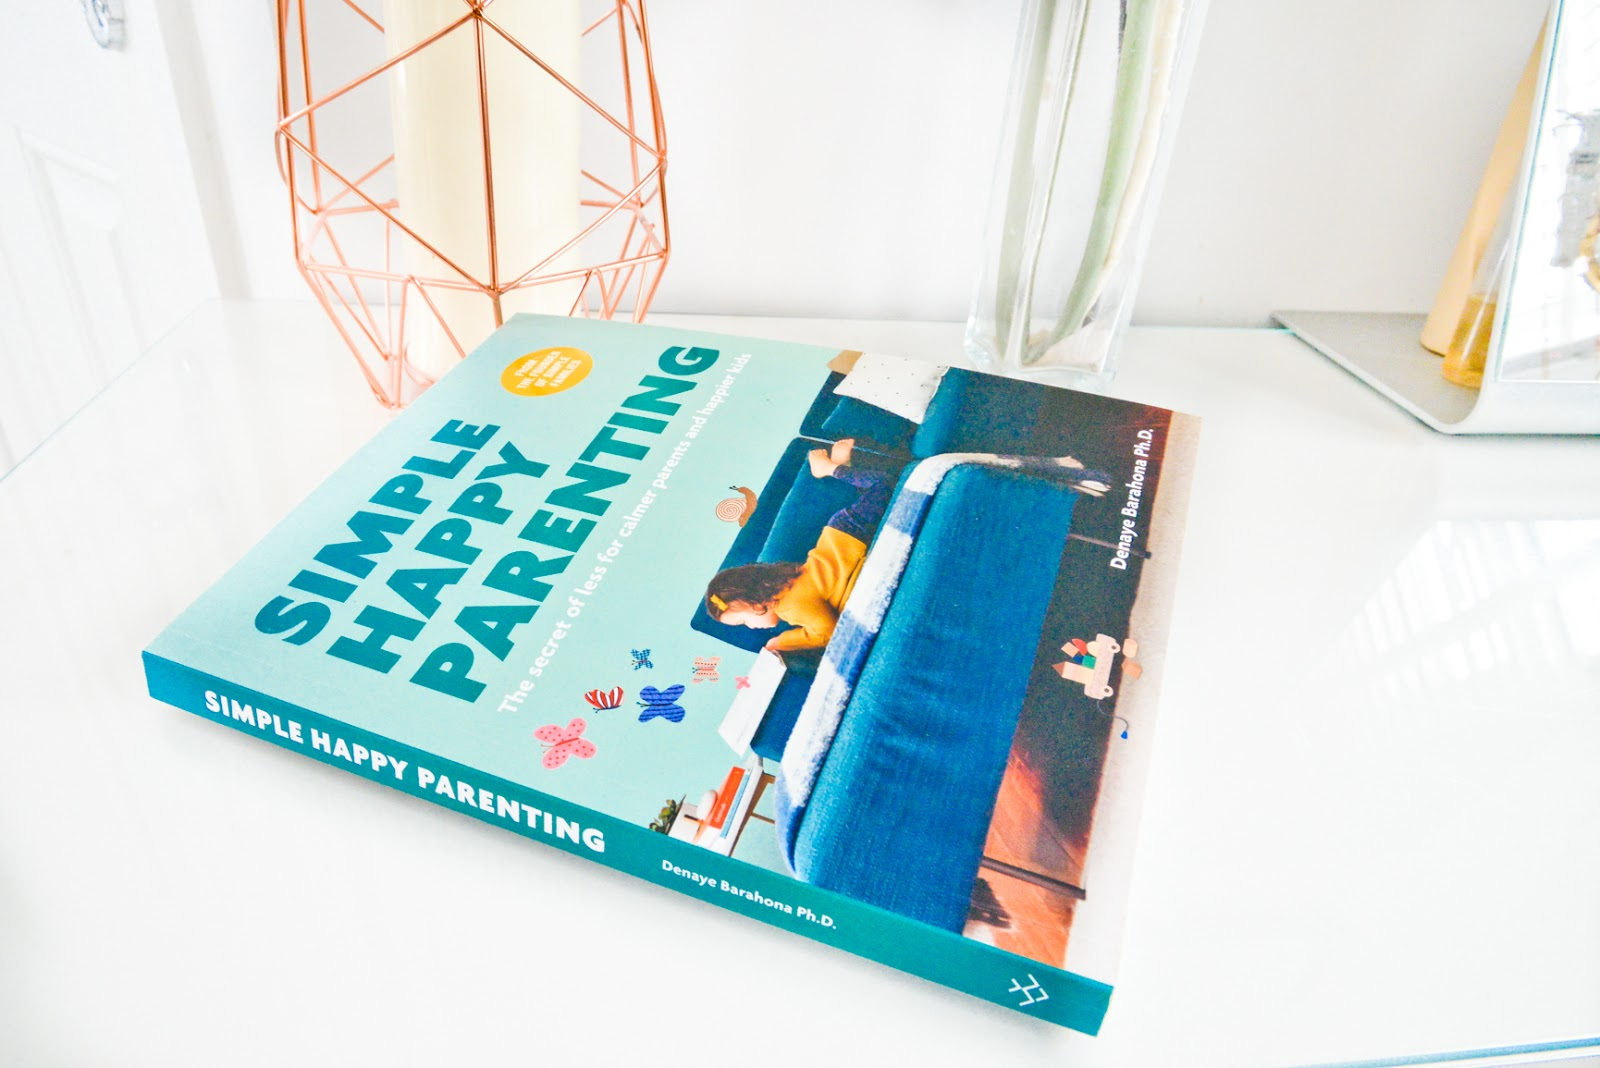 simple happy parenting, simple happy parenting book review, minimalism parenting book,